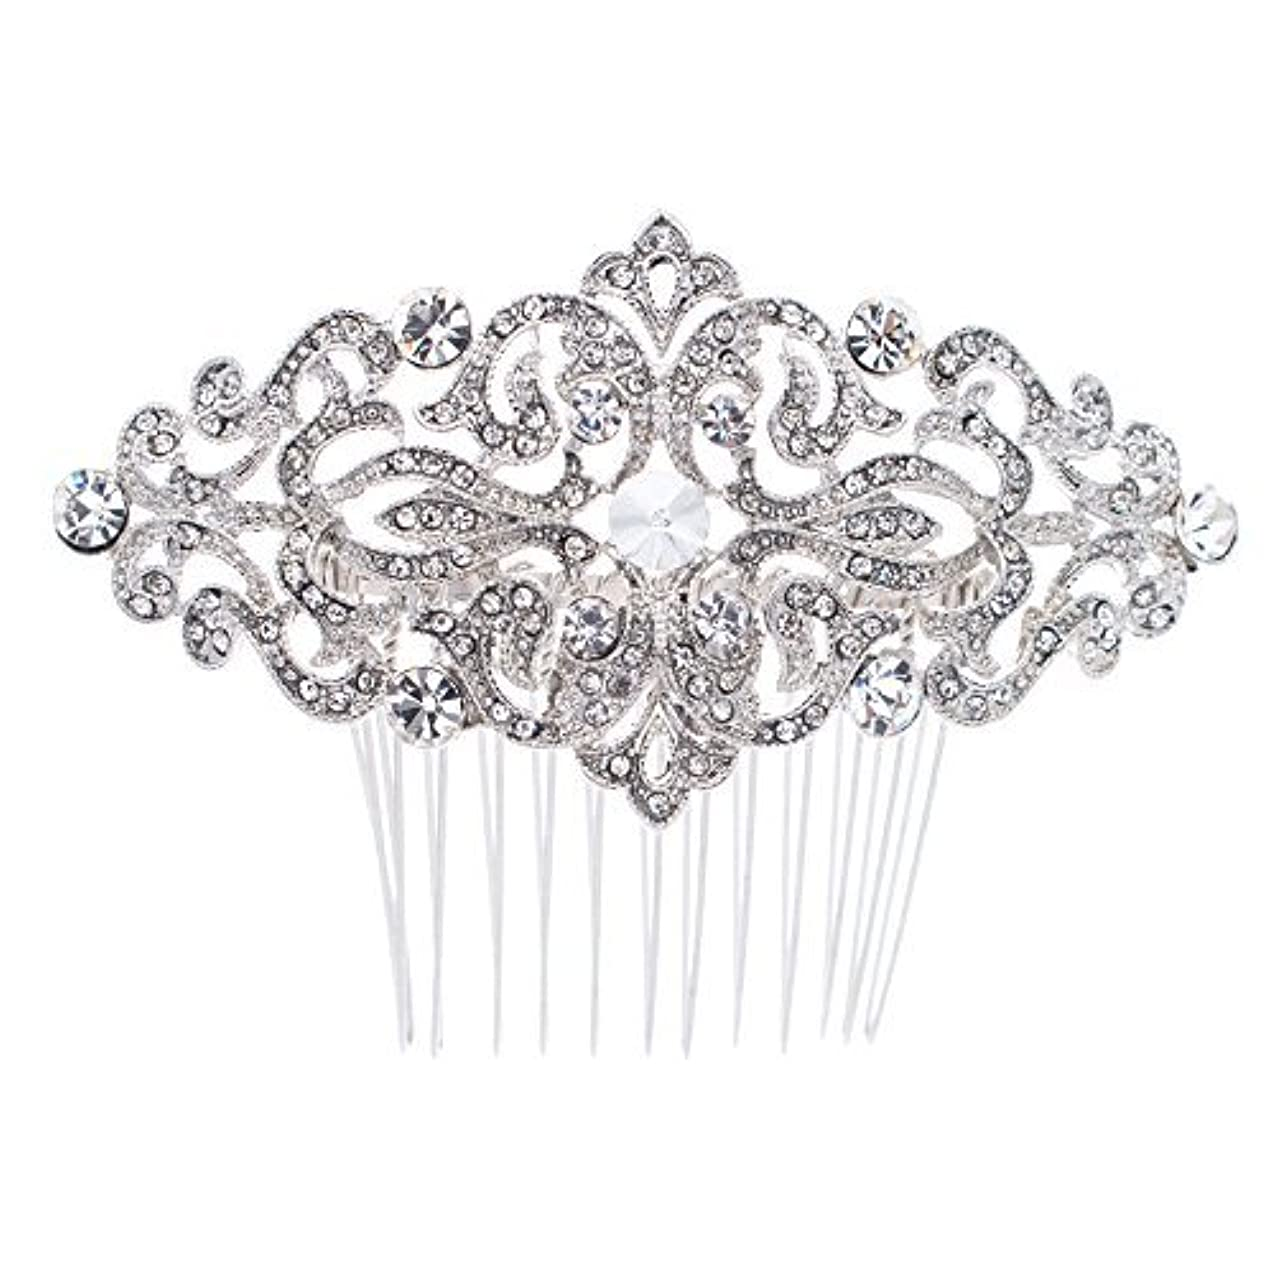 腸本を読む家主Rhinestone Crystal Hair Comb,Bridal Wedding Hairpin,Side Hair Comb,Hair Accessories Jewelry FA5016 [並行輸入品]